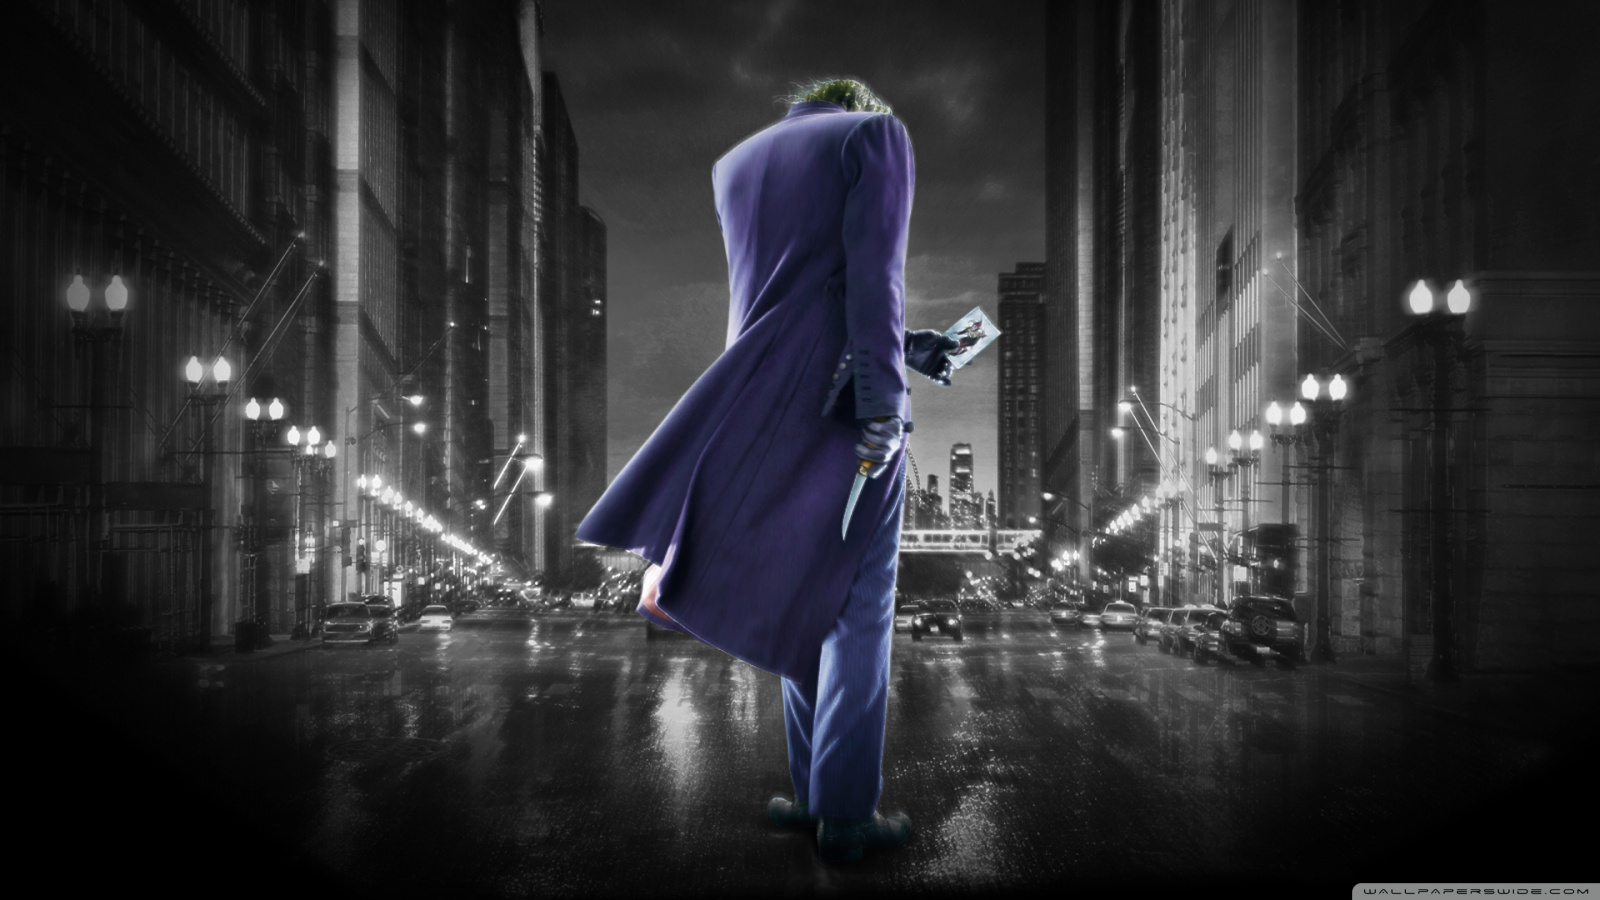 Joker HD desktop wallpaper : High Definition : Fullscreen : Mobile